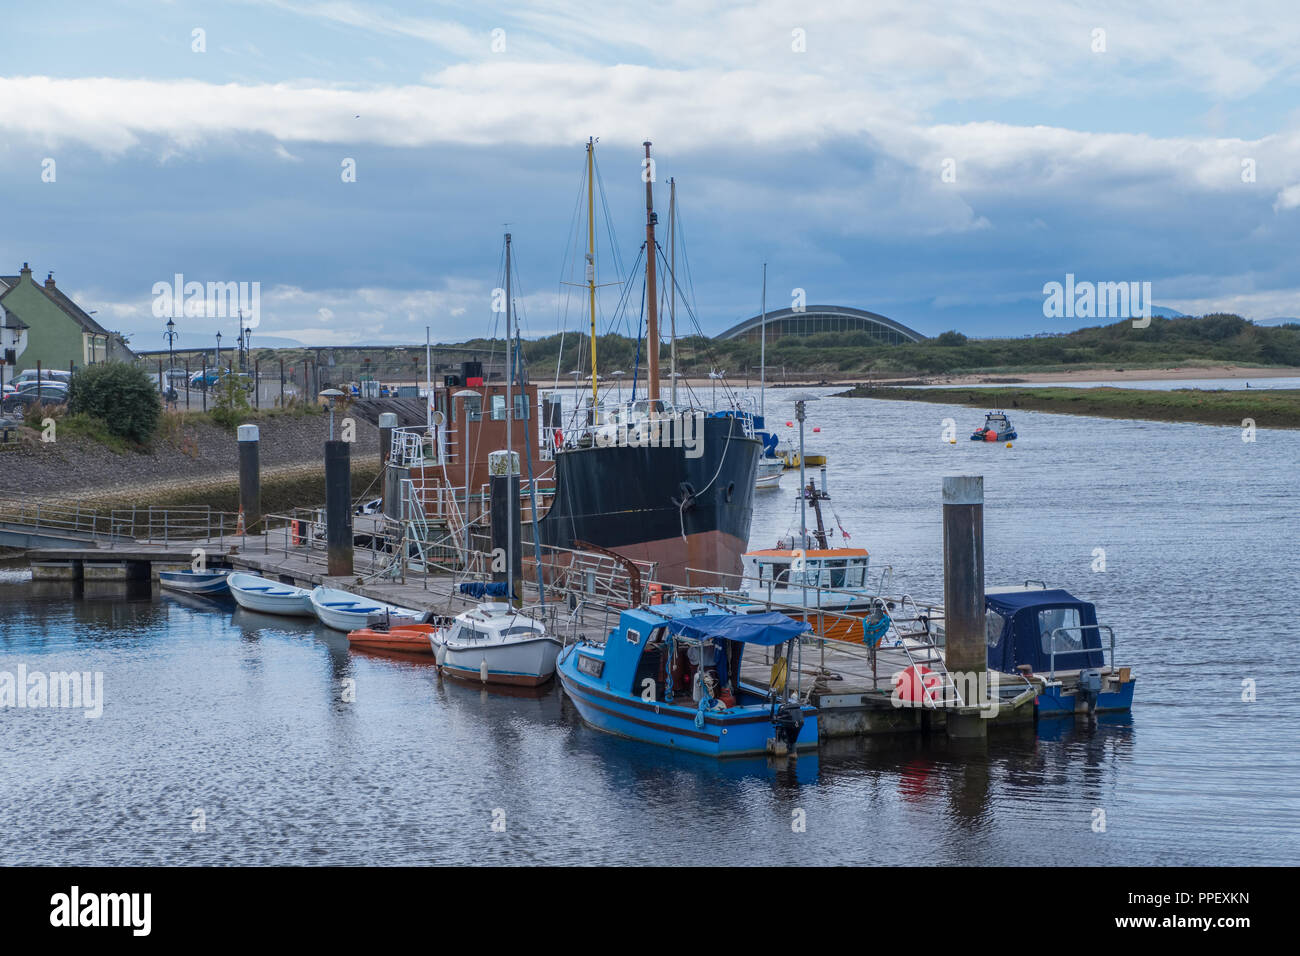 Fishing Trawler and some small craft moored at Irvine Harbour. - Stock Image